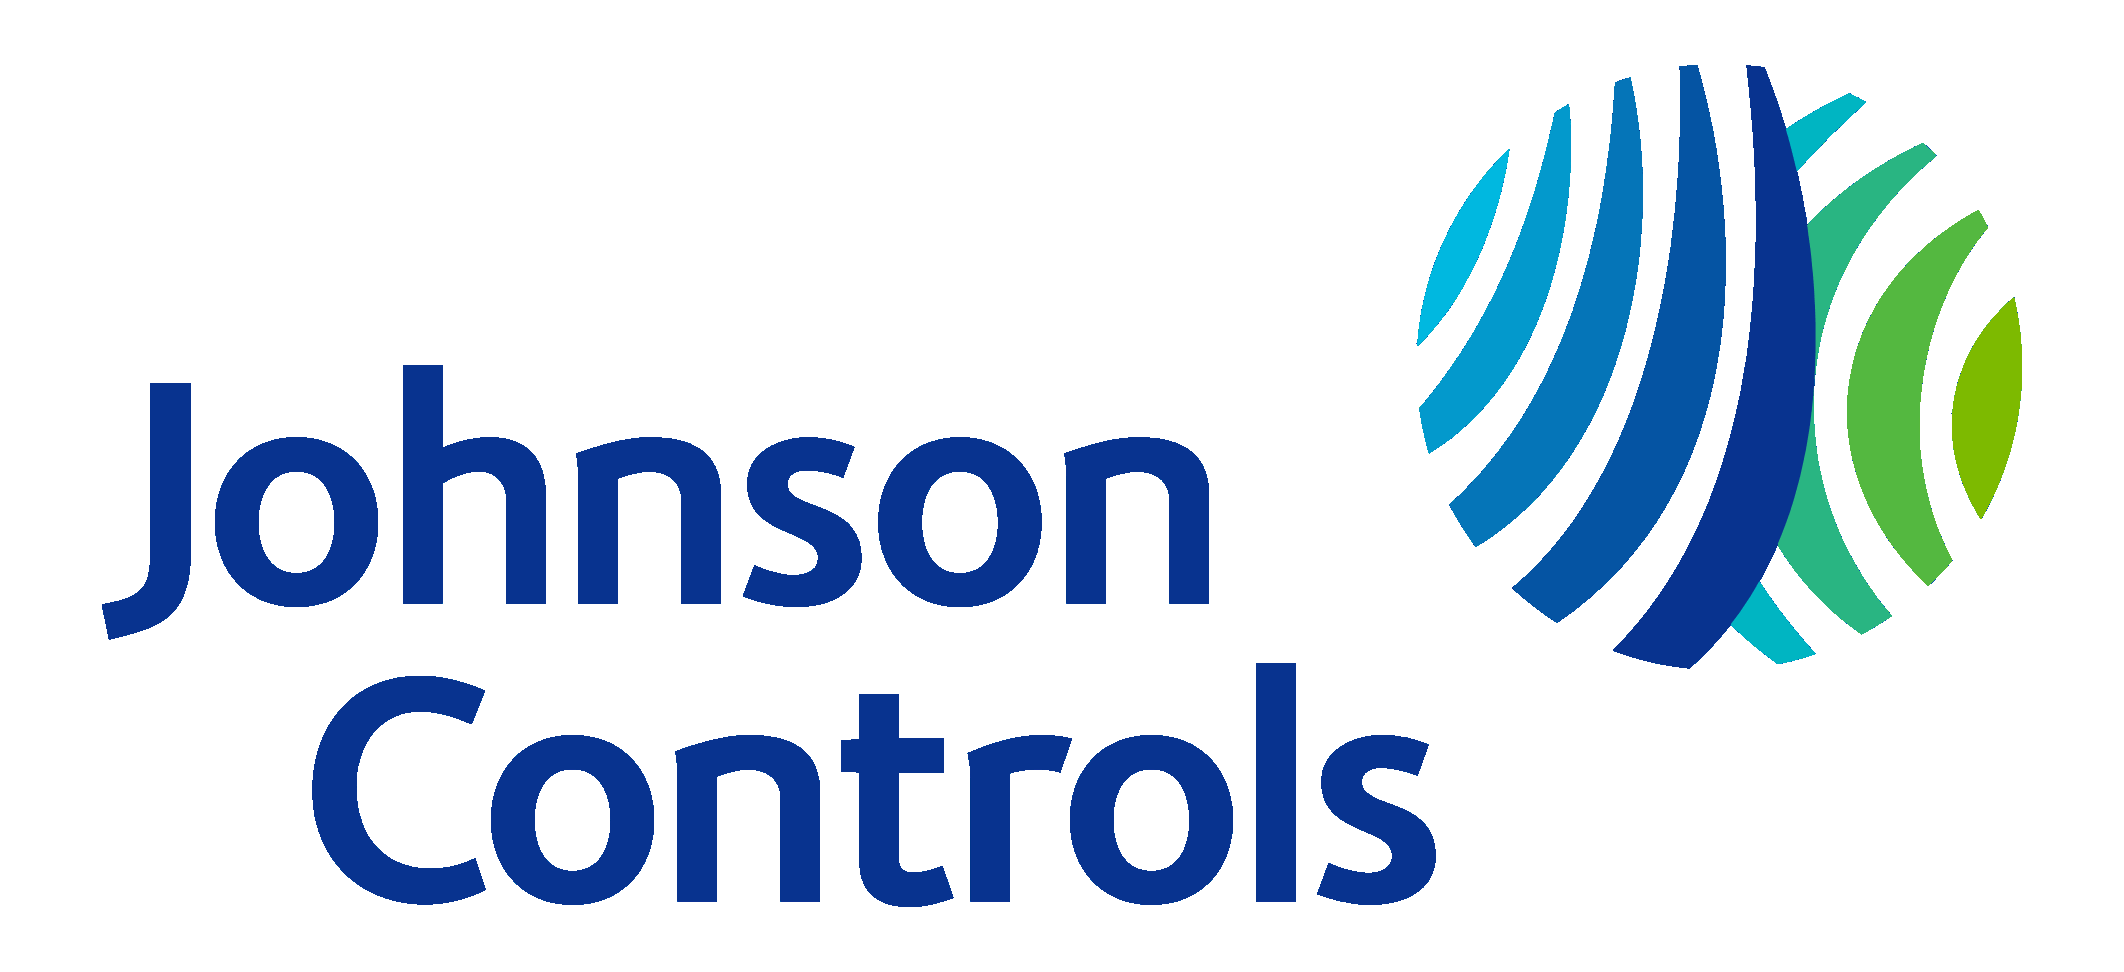 JohnsonControls.png